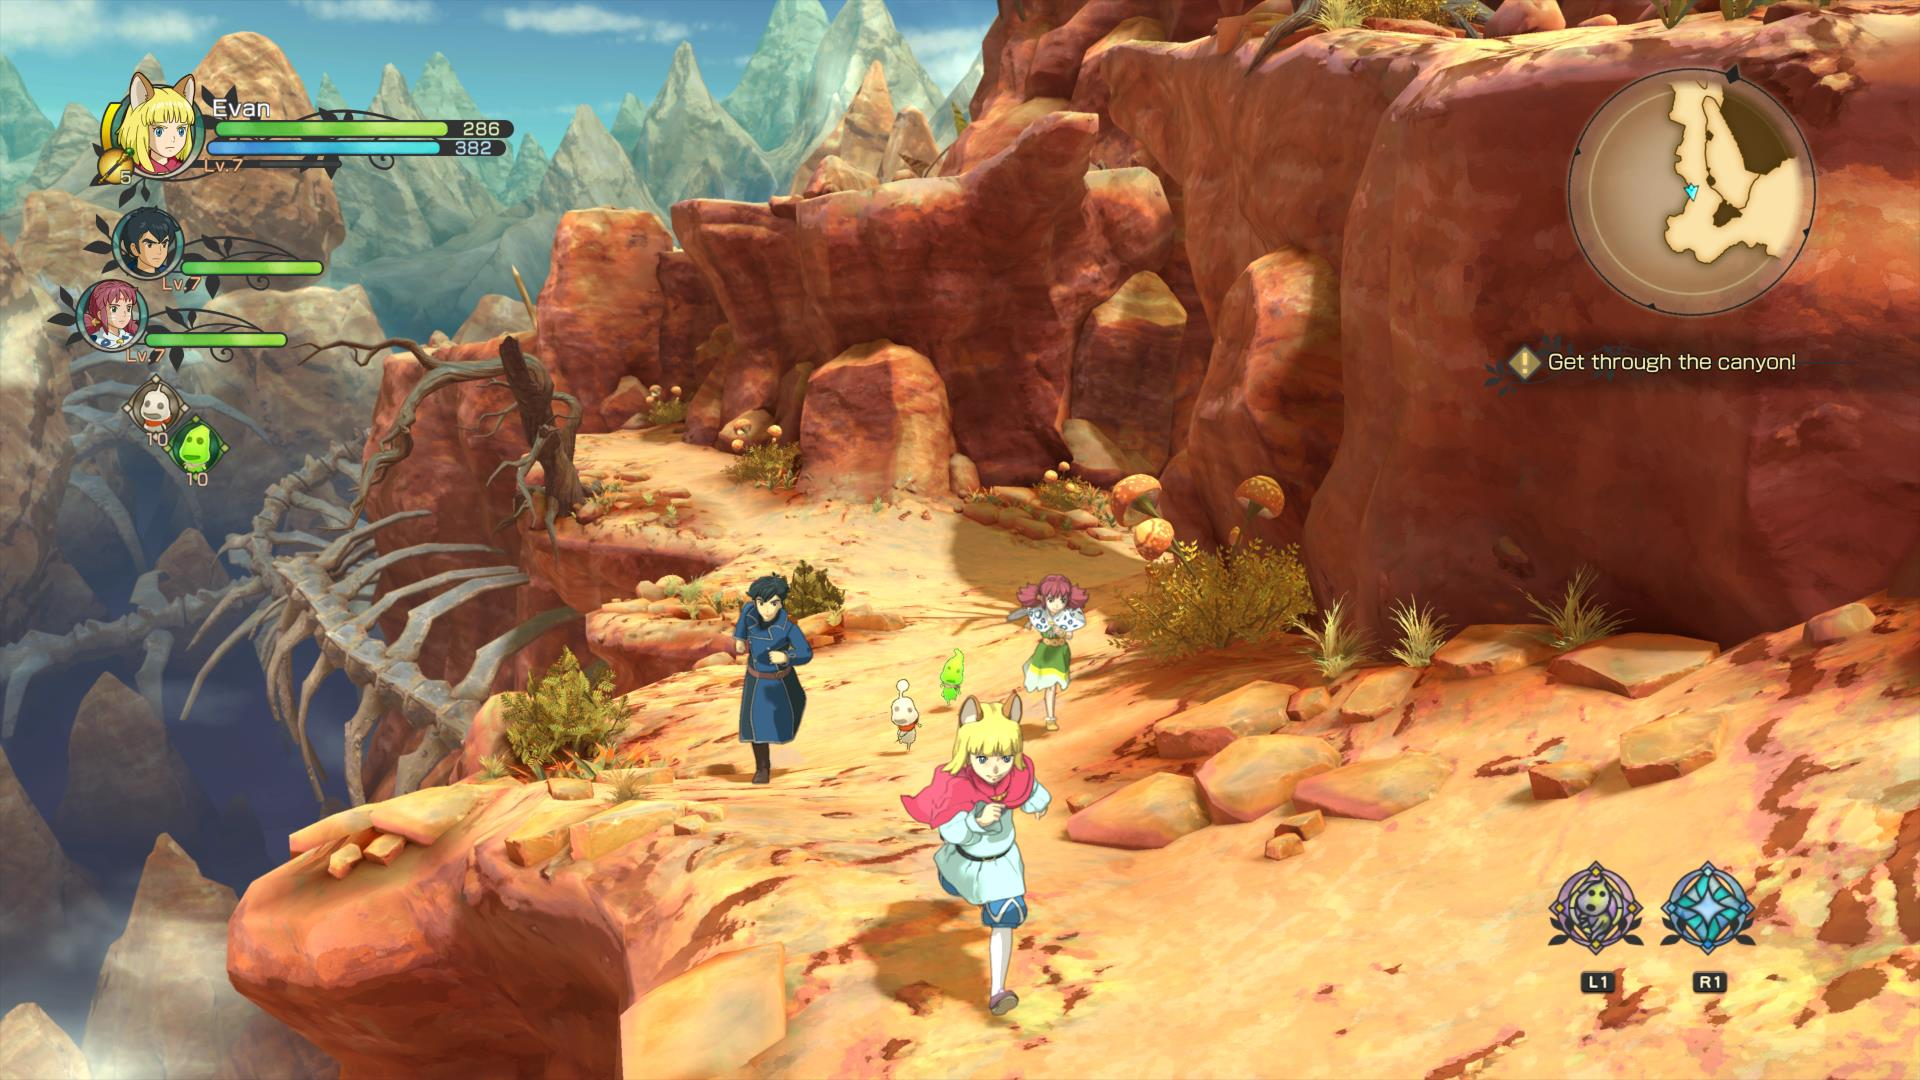 ni-no-kuni-ii-revenant-kingdom-screenshot-13